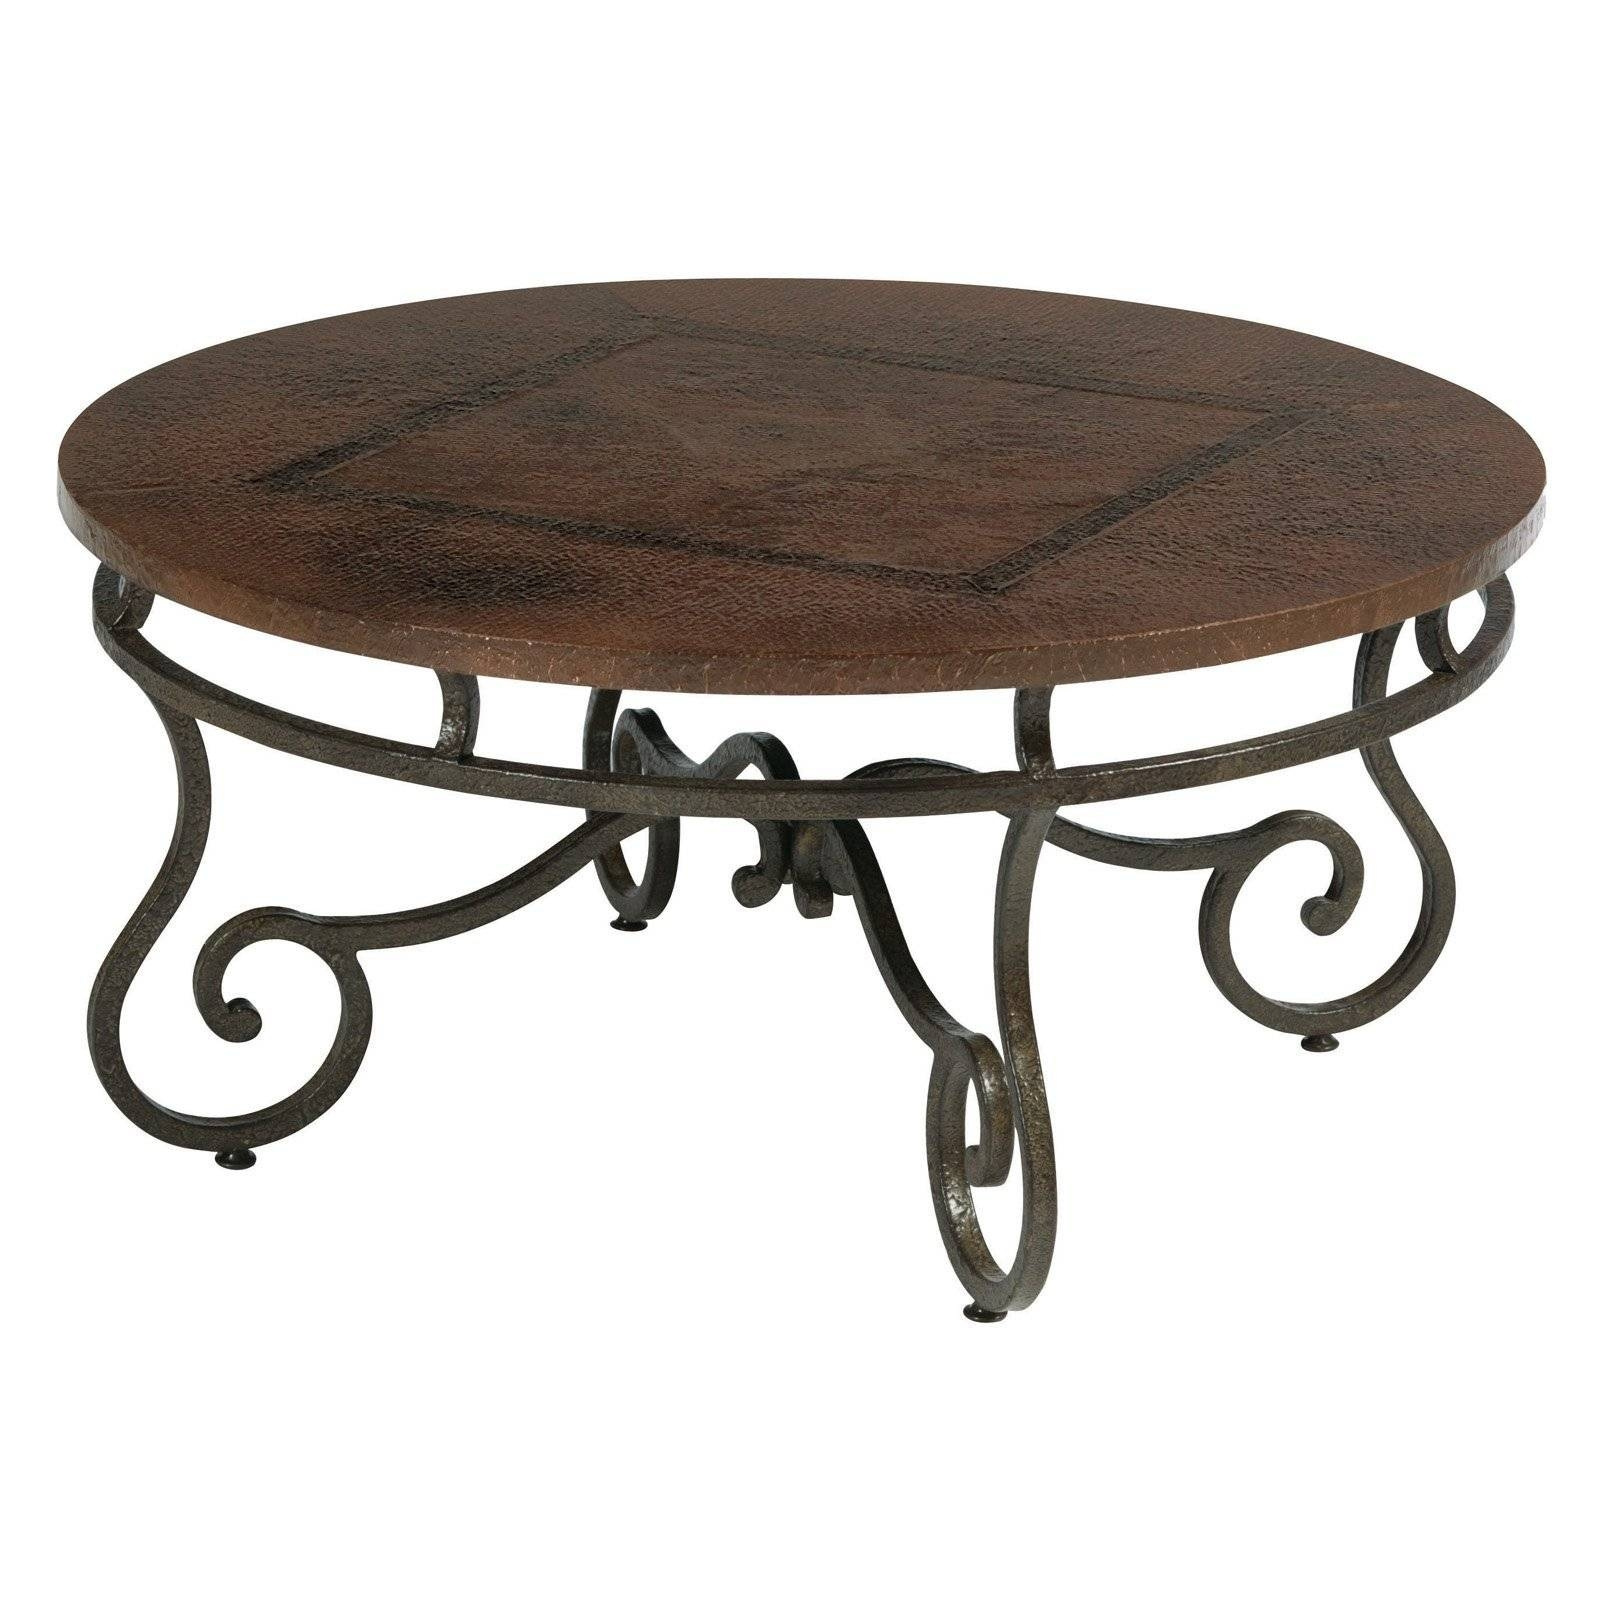 Coffee Table: Simple Round Coffee Tables Metal And Glass Coffee for Round Steel Coffee Tables (Image 12 of 30)